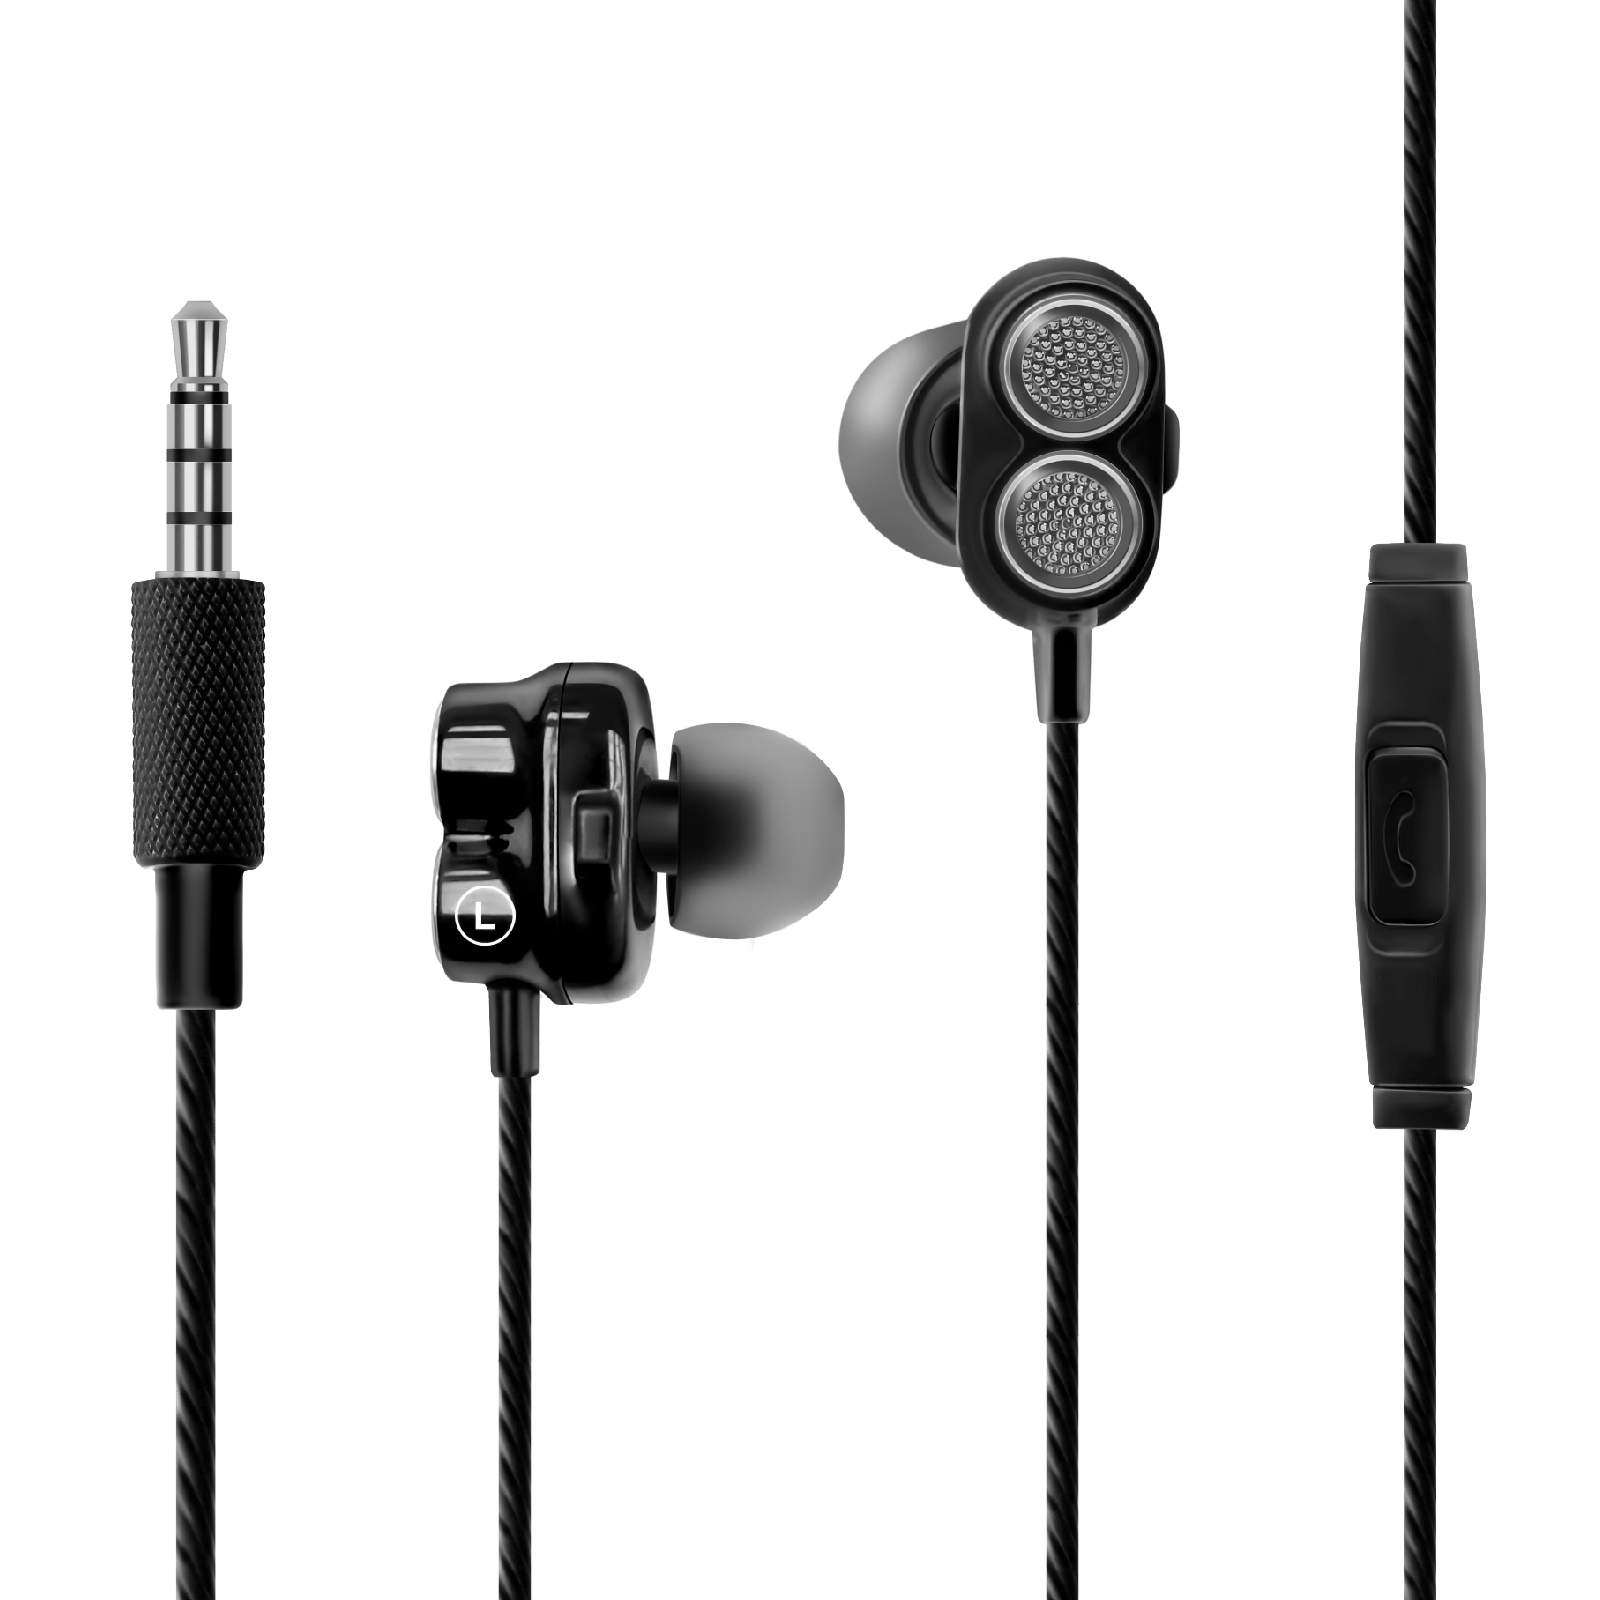 ea7a9a58139 PROMATE Super Bass Dual Drive In-Ear Stereo Earphones - AVN Solutions